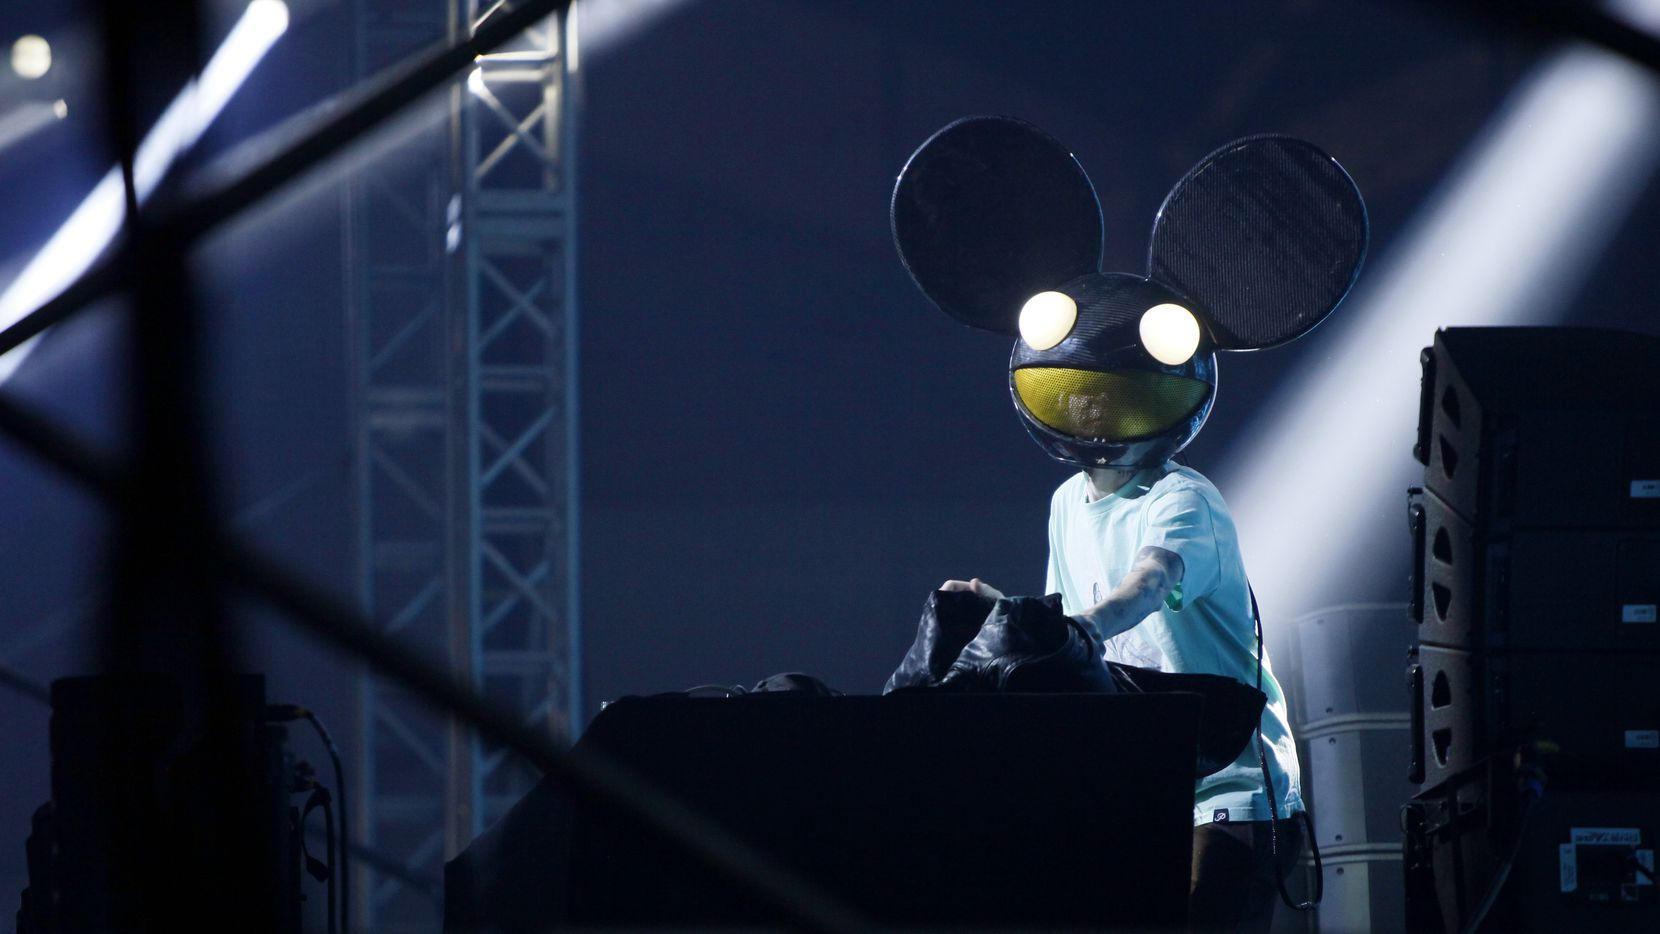 Deadmau5 performs at Lights All Night at Dallas Market Hall in 2016.